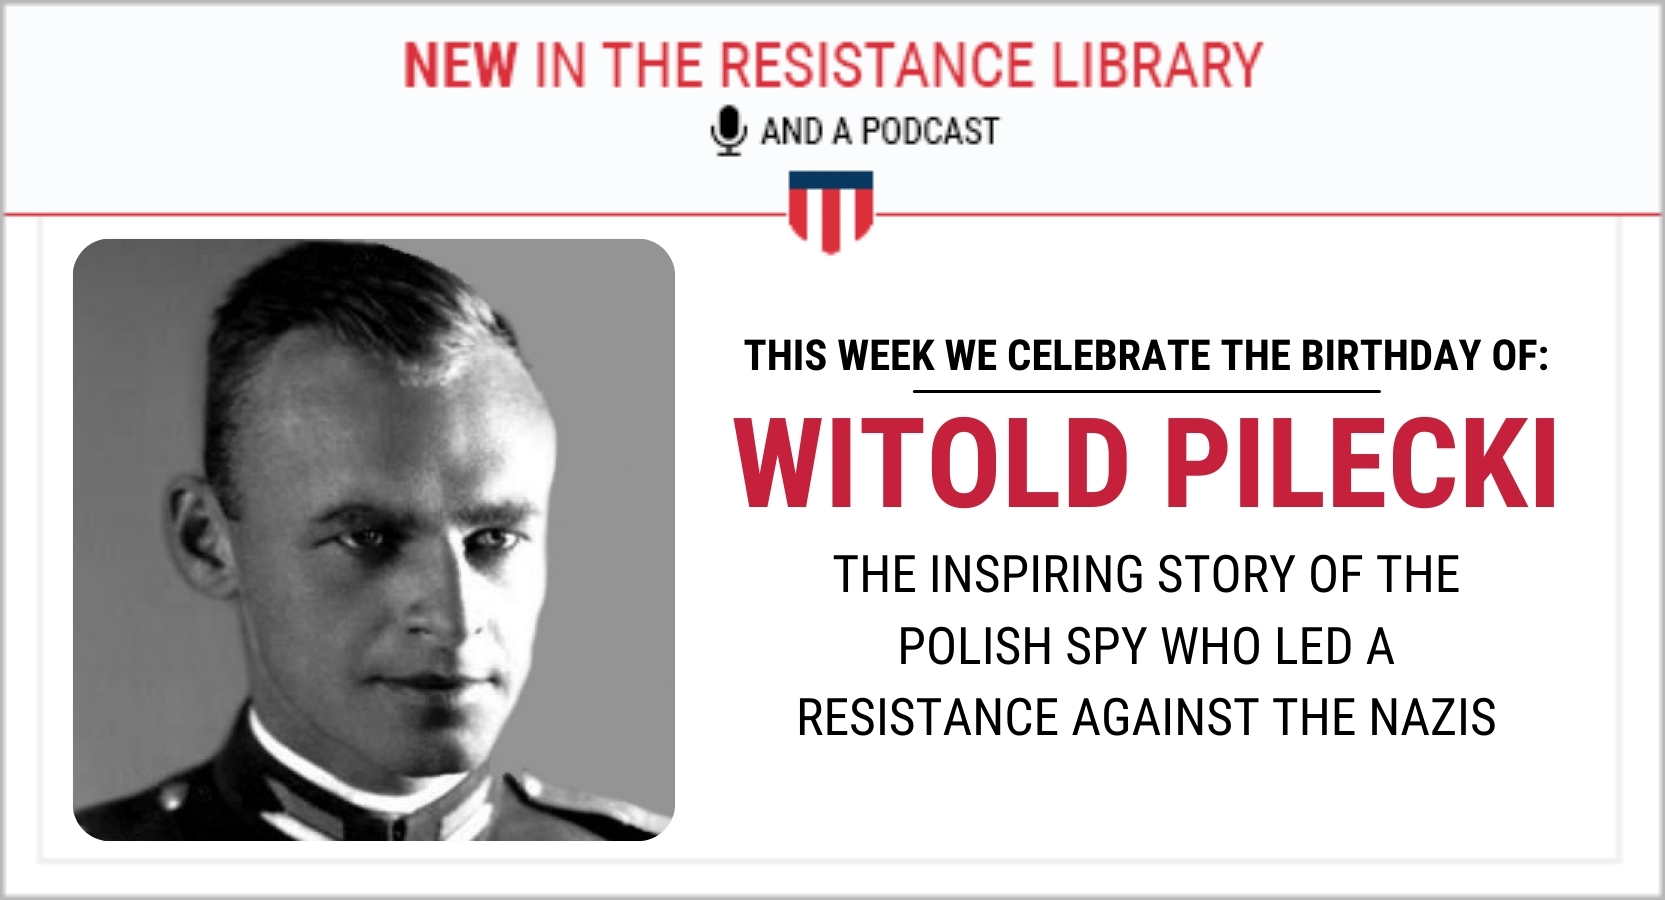 witold pilecki article and podcast